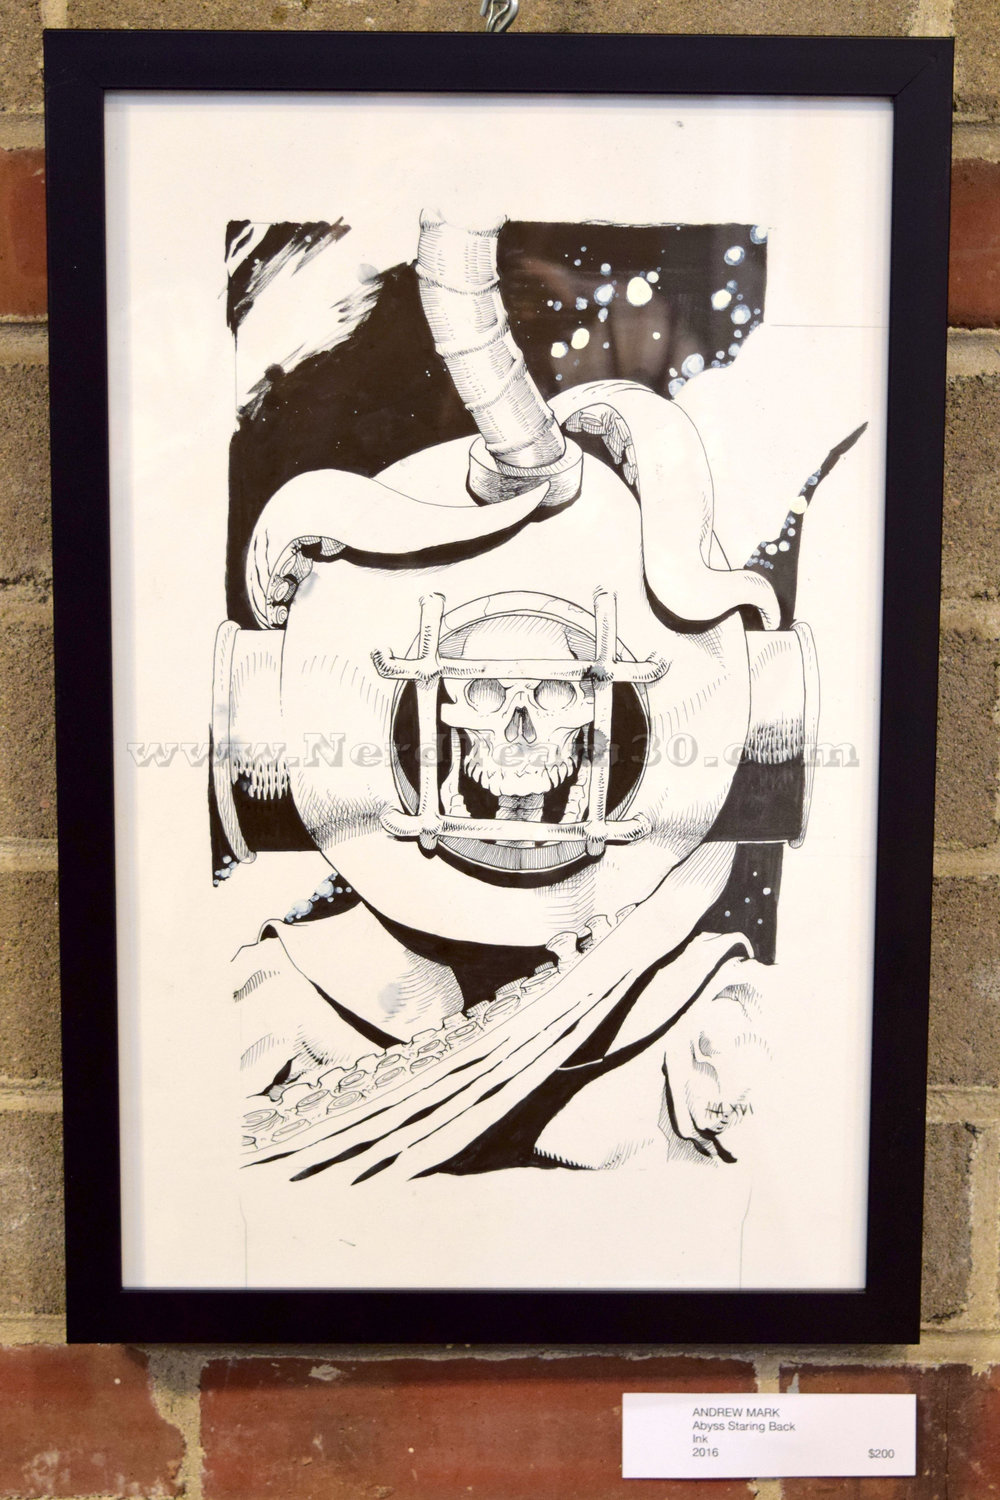 """Andrew Mark """"Abyss Staring Back"""" Ink 2016   $200"""